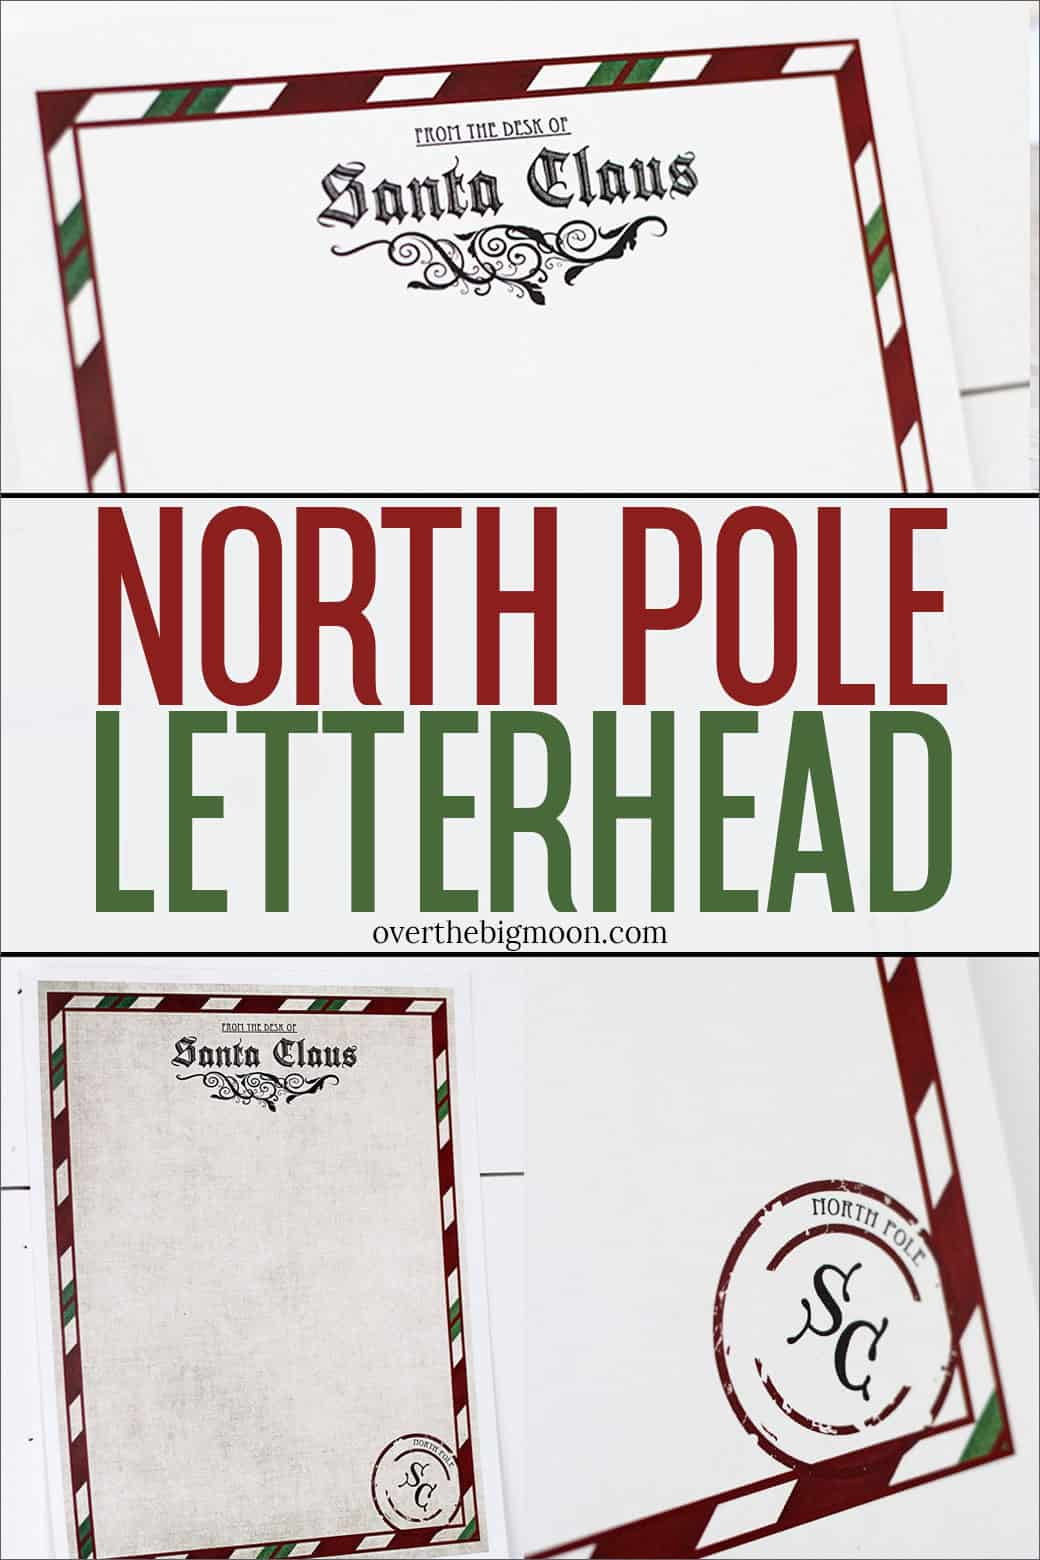 A printable North Pole Letterhead for you to print and have a Letter from Santa come to your little ones during the Holidays or in their stocking on Christmas morning! Available in two different versions.